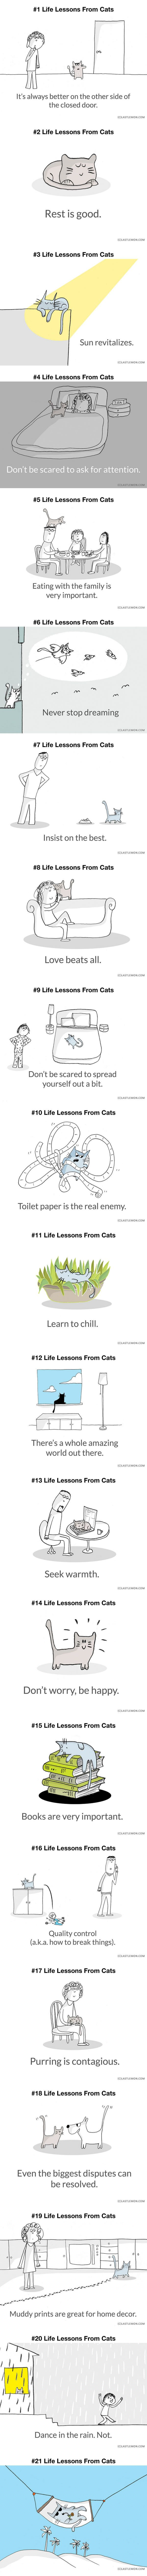 life-lesson-from-cats